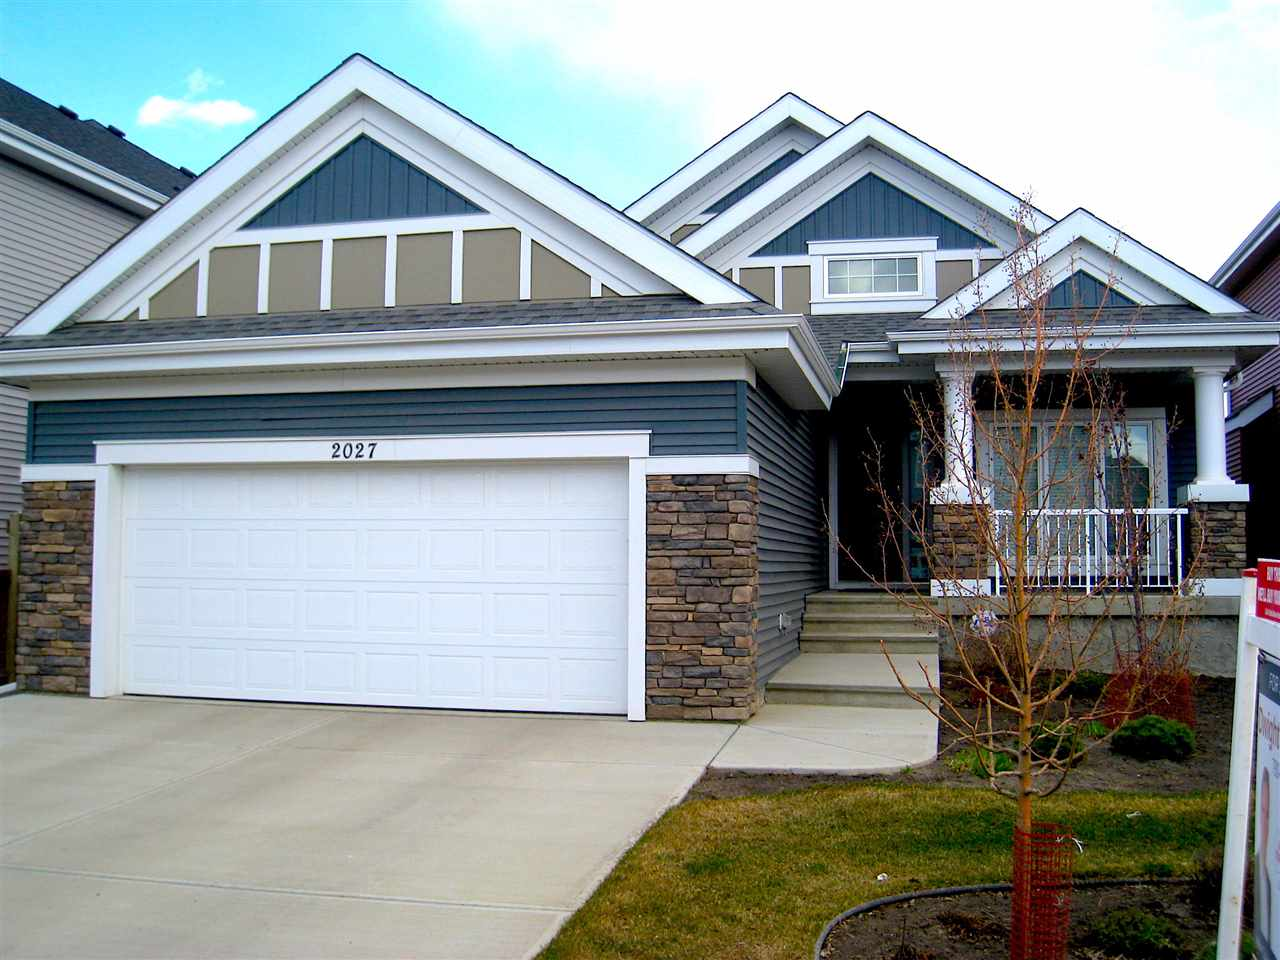 MLS® listing #E4157388 for sale located at 2027 90 Street